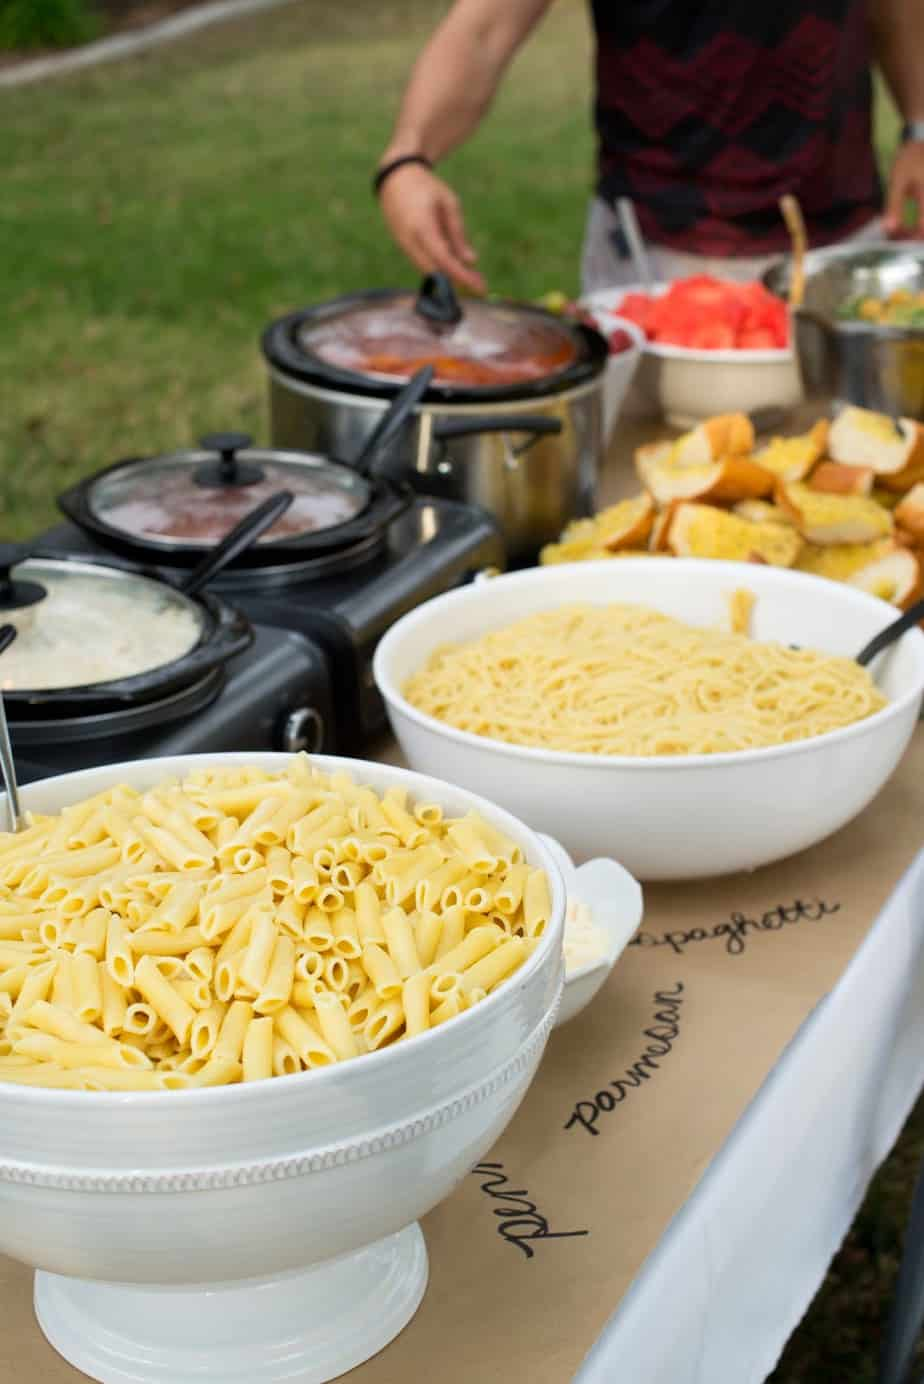 pasta buffet bar with different sauces in crock pots at graduation party.